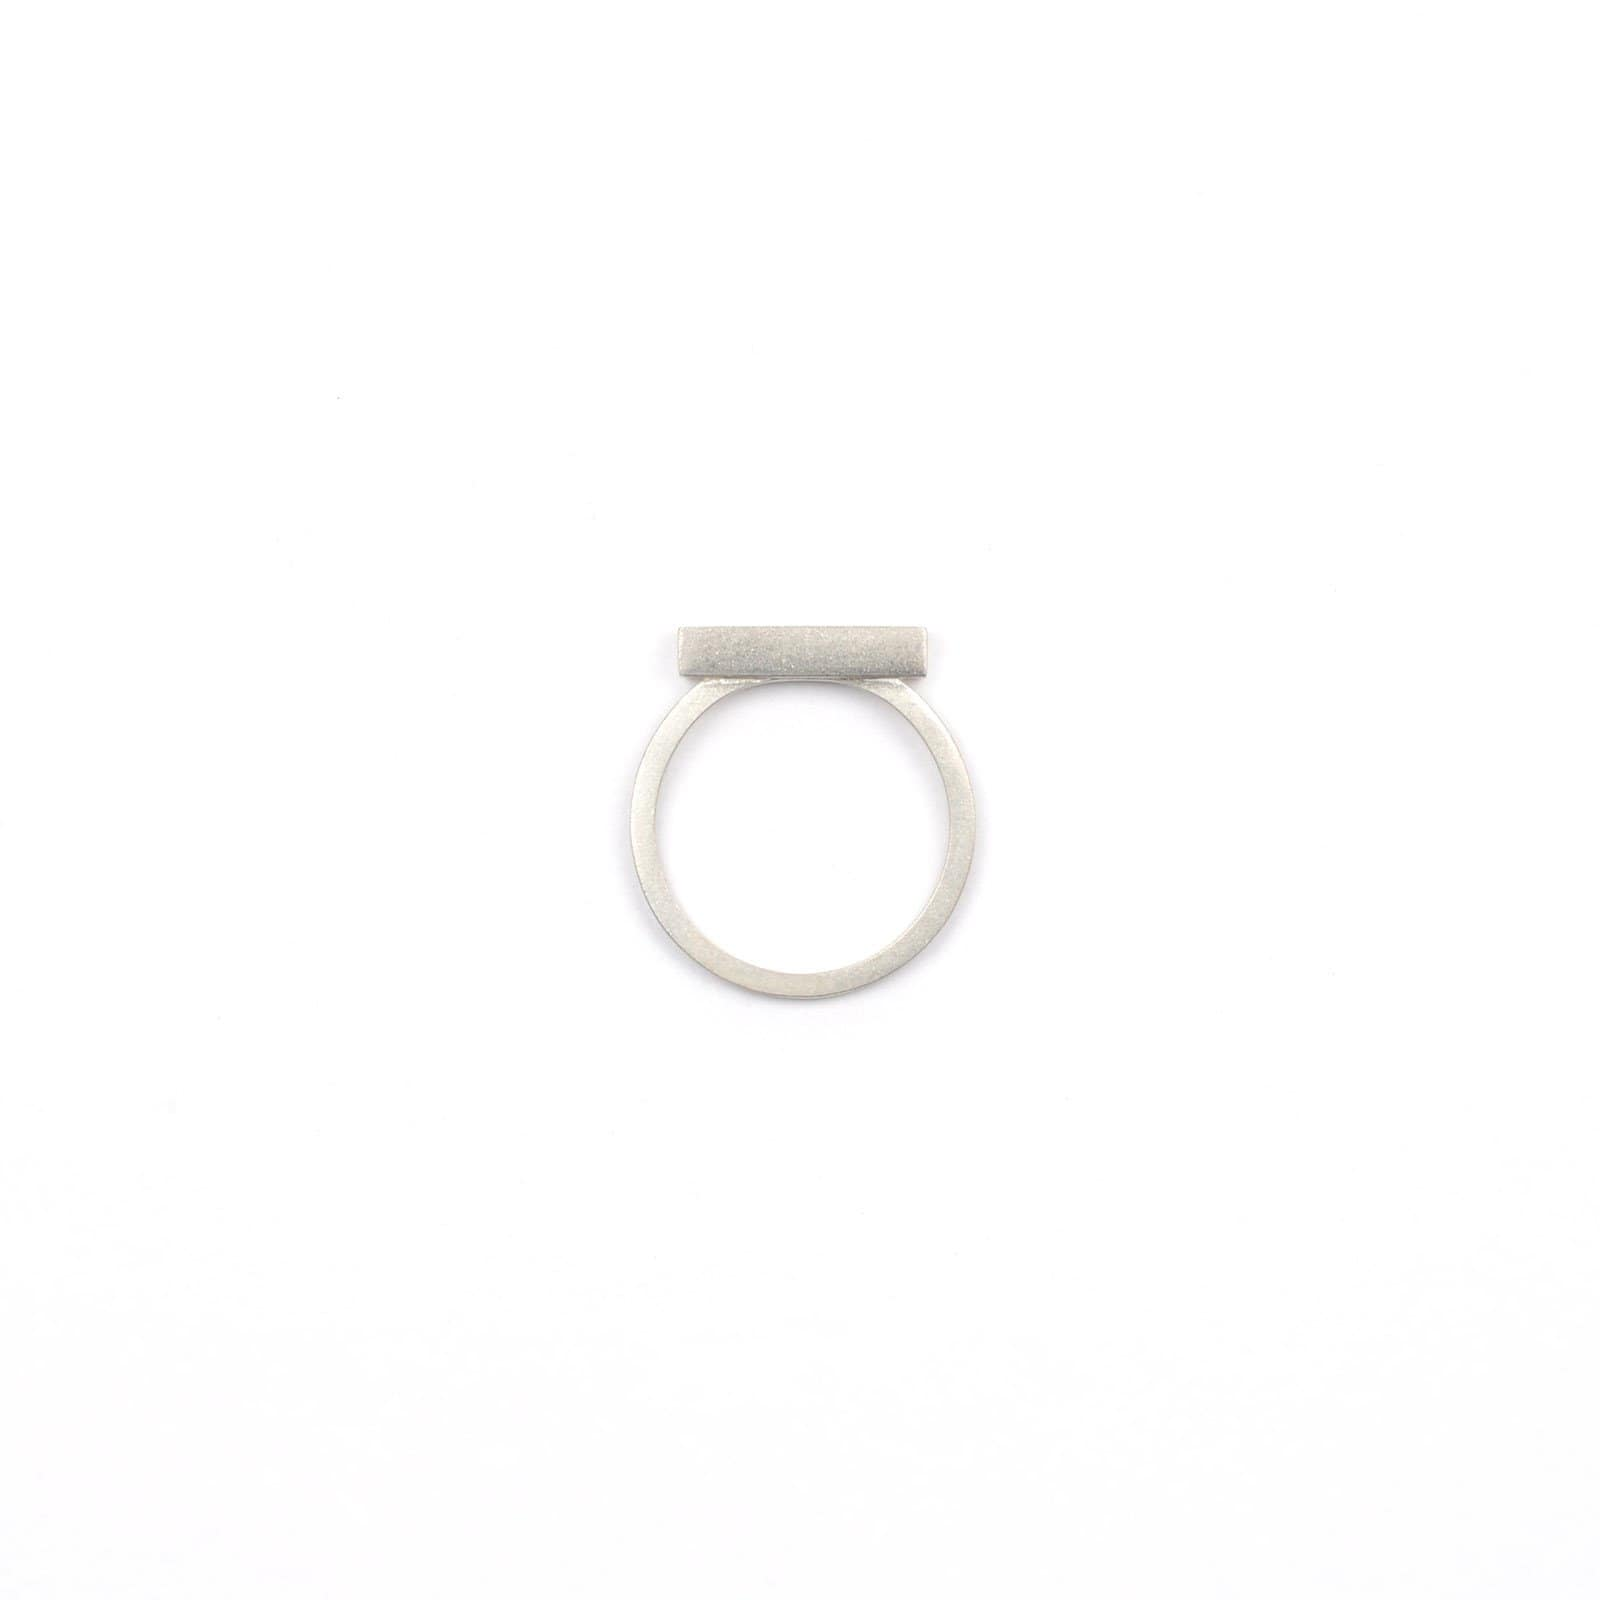 Tom Pigeon Rings Béton Silver Ring